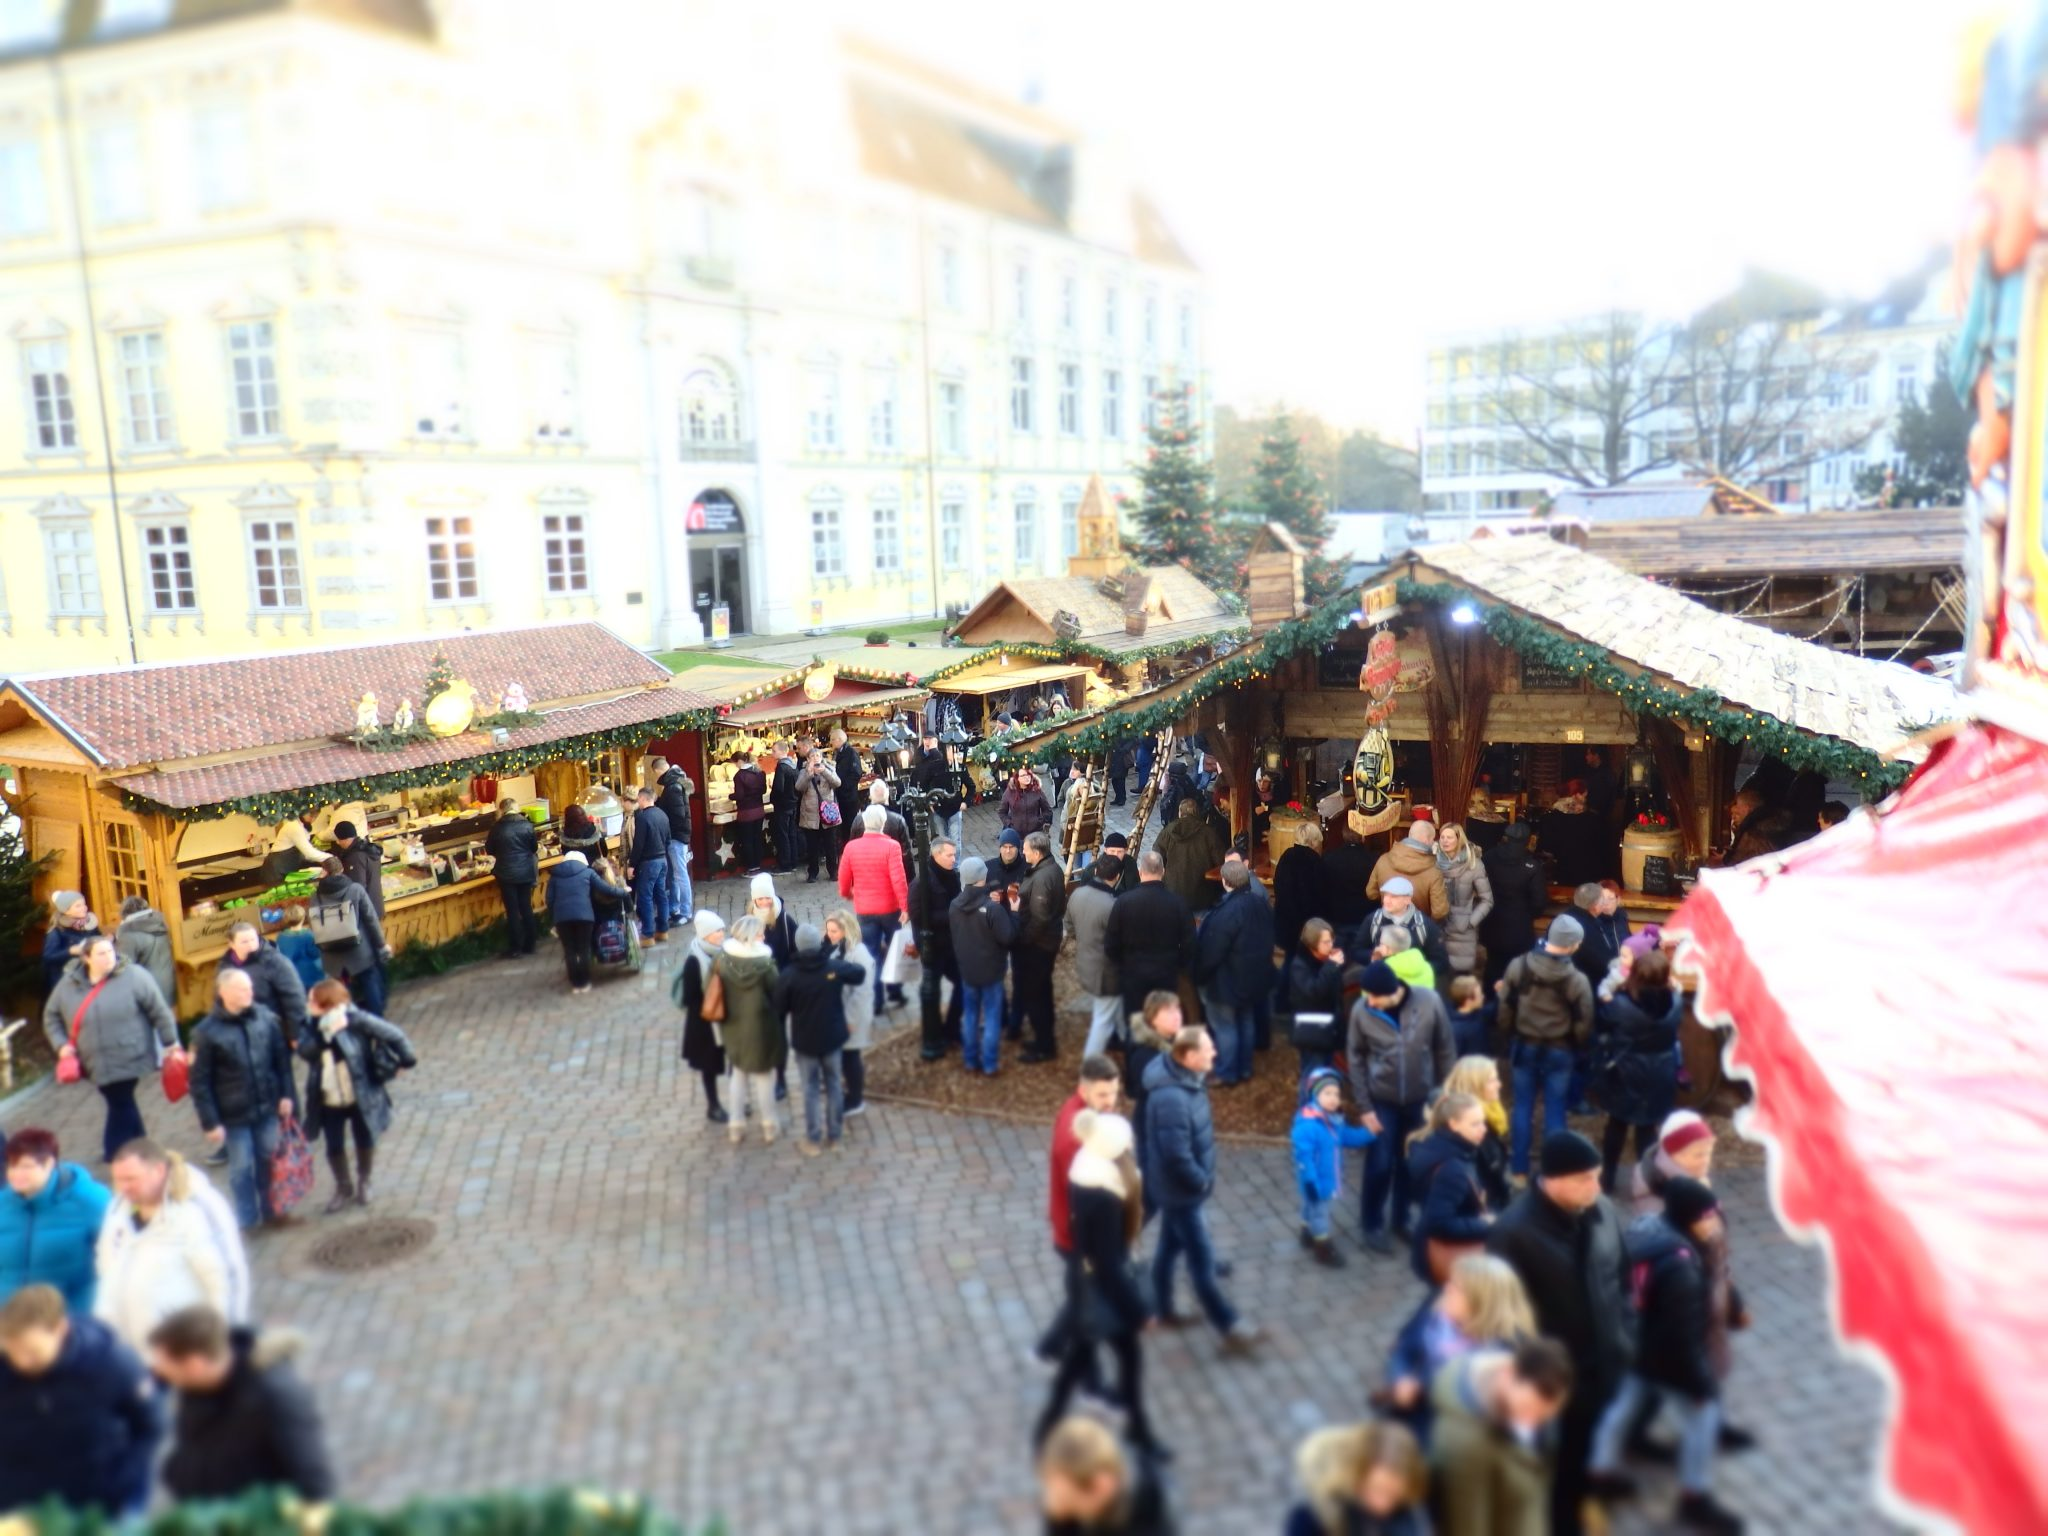 A few of the market stalls with the Oldenburger castle as backdrop. Notice the people drinking glüwein in the foreground.